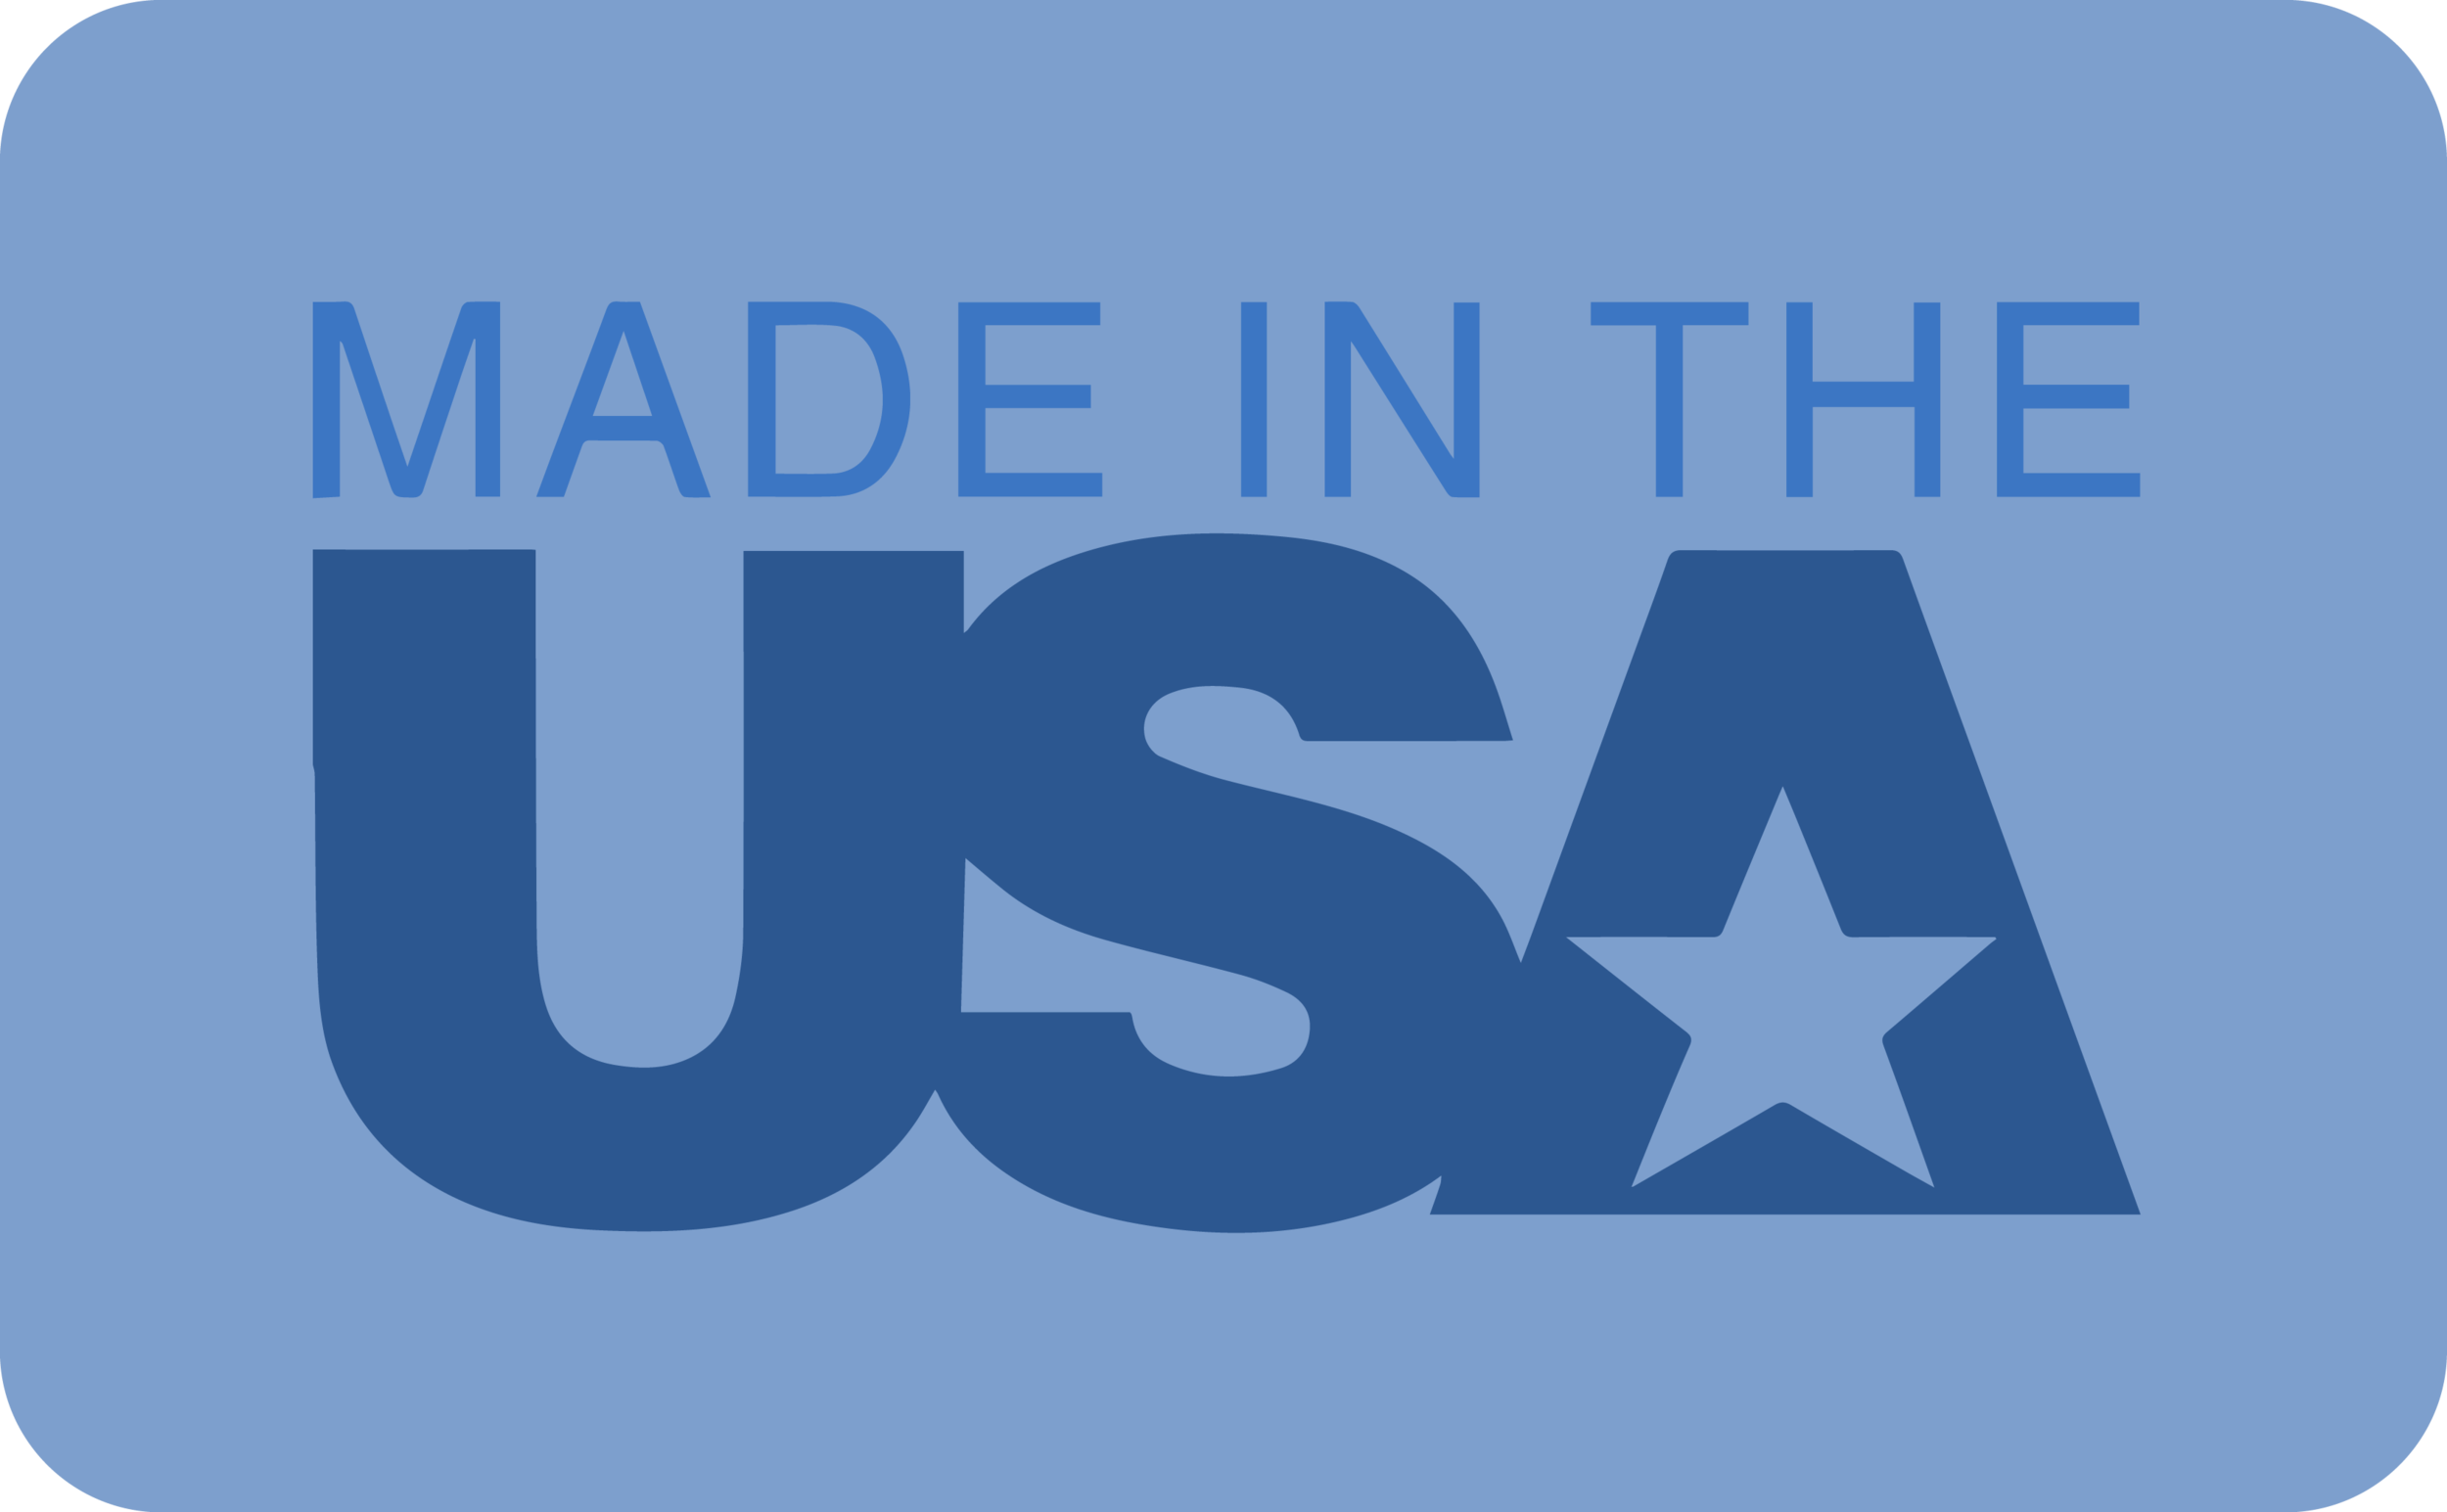 tiles-08 made in the usa.png